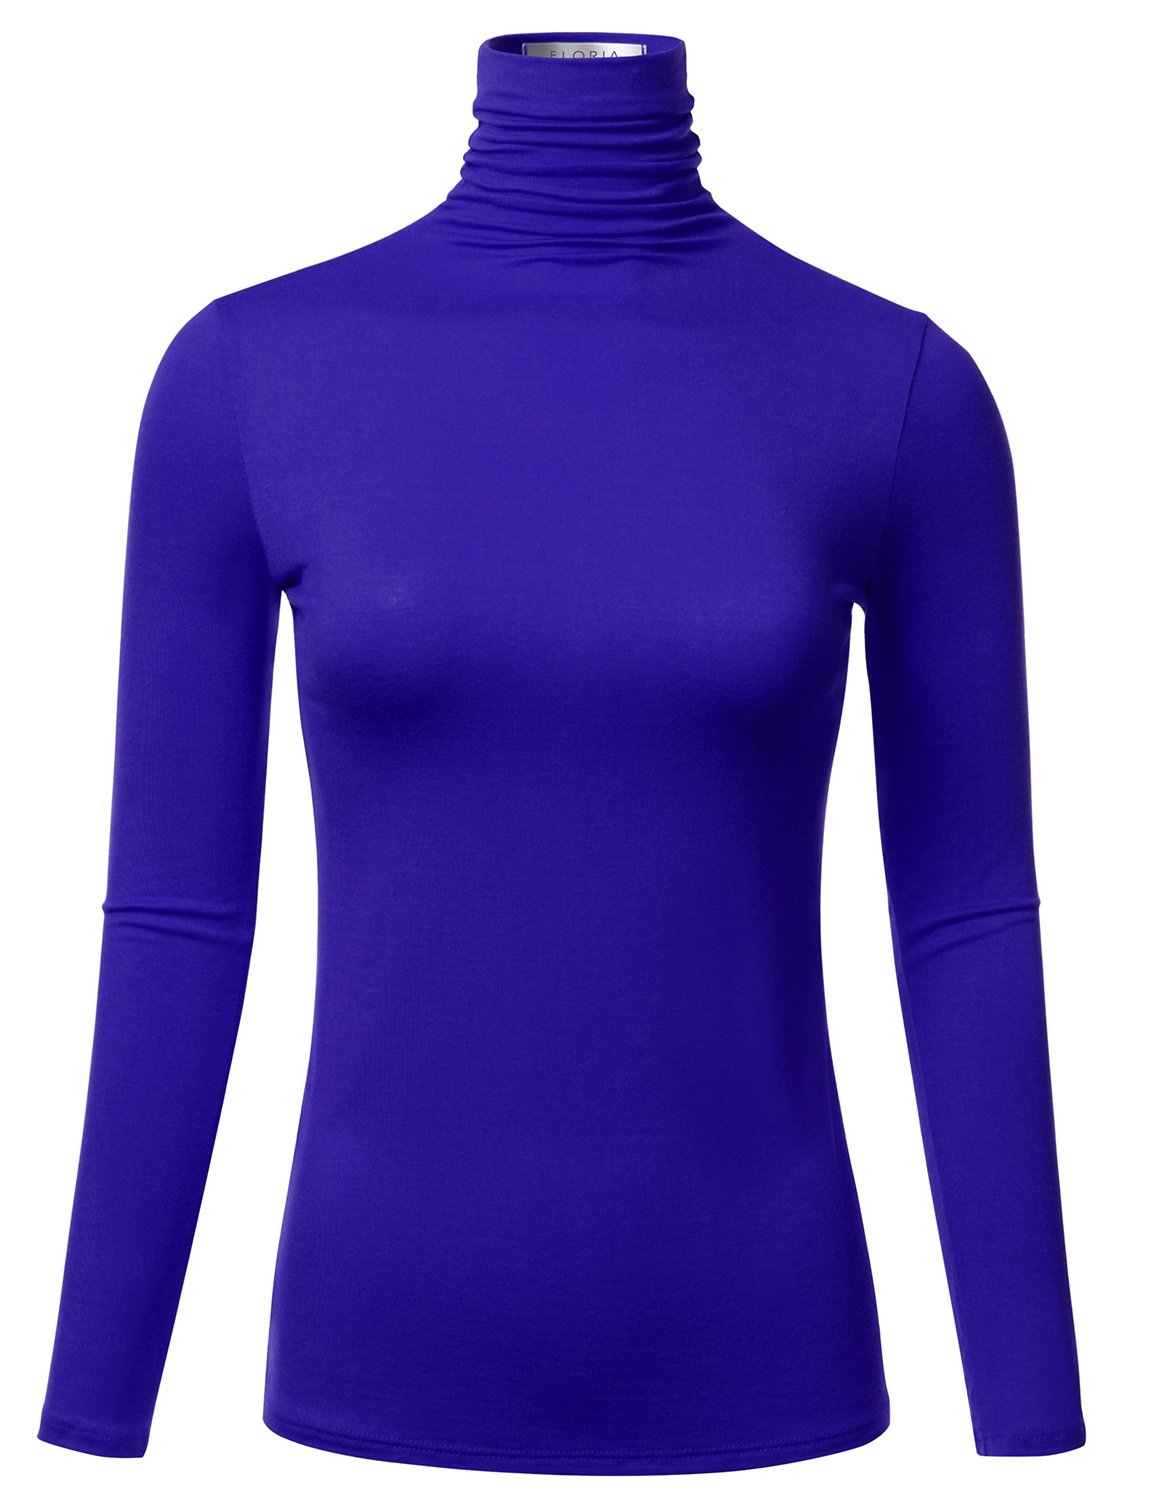 FLORIA Womens Long Sleeve Lightweight Turtleneck Top Pullover Sweater Royalblue L